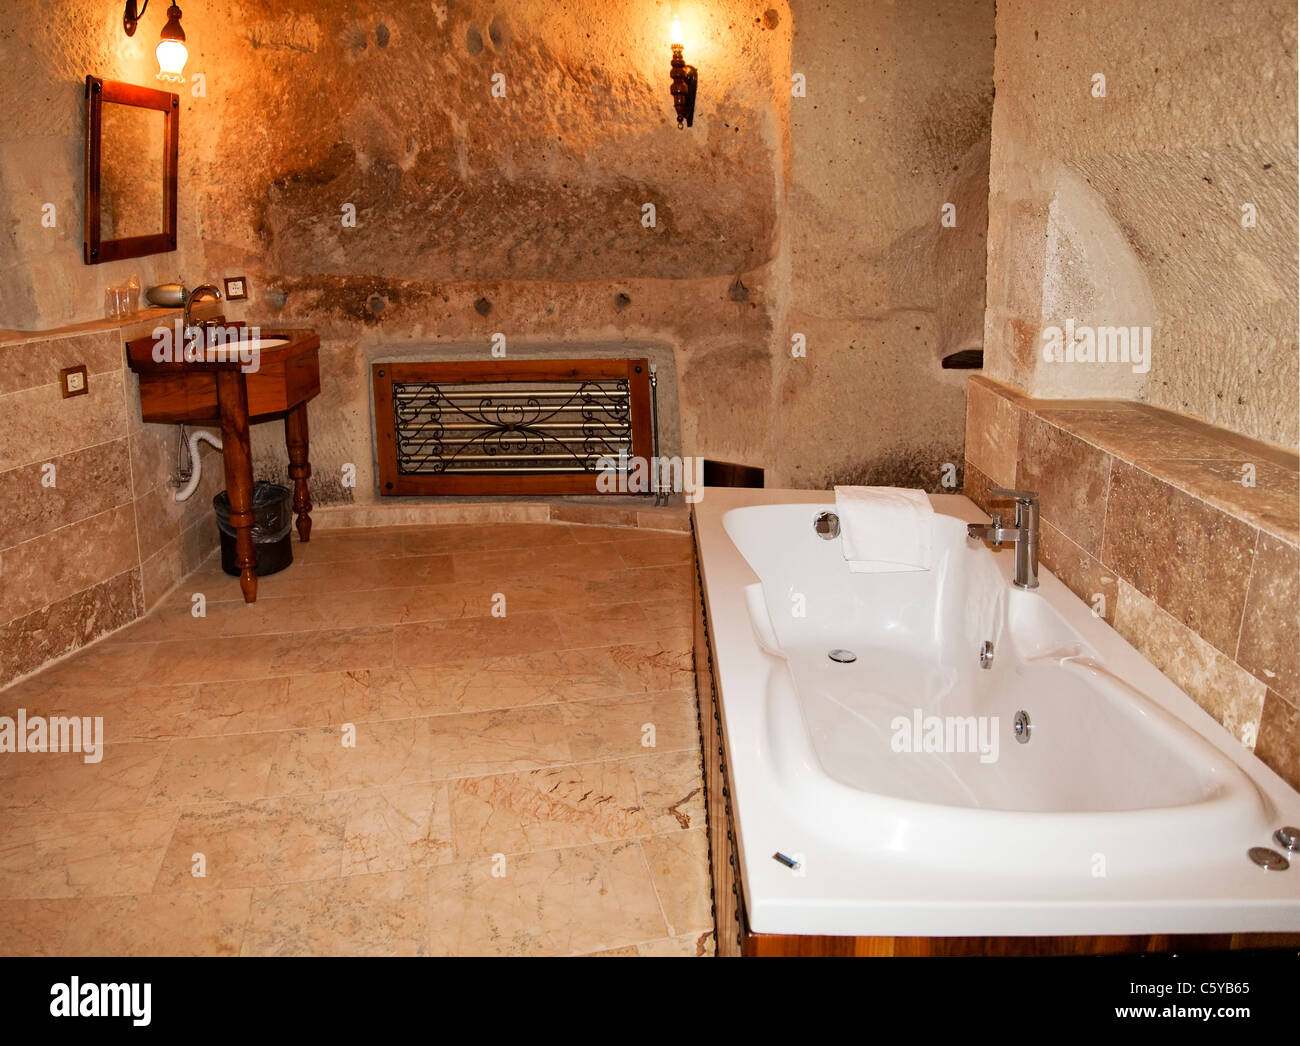 layout of bathroom with marble tiling showing bath tub, dresser ...